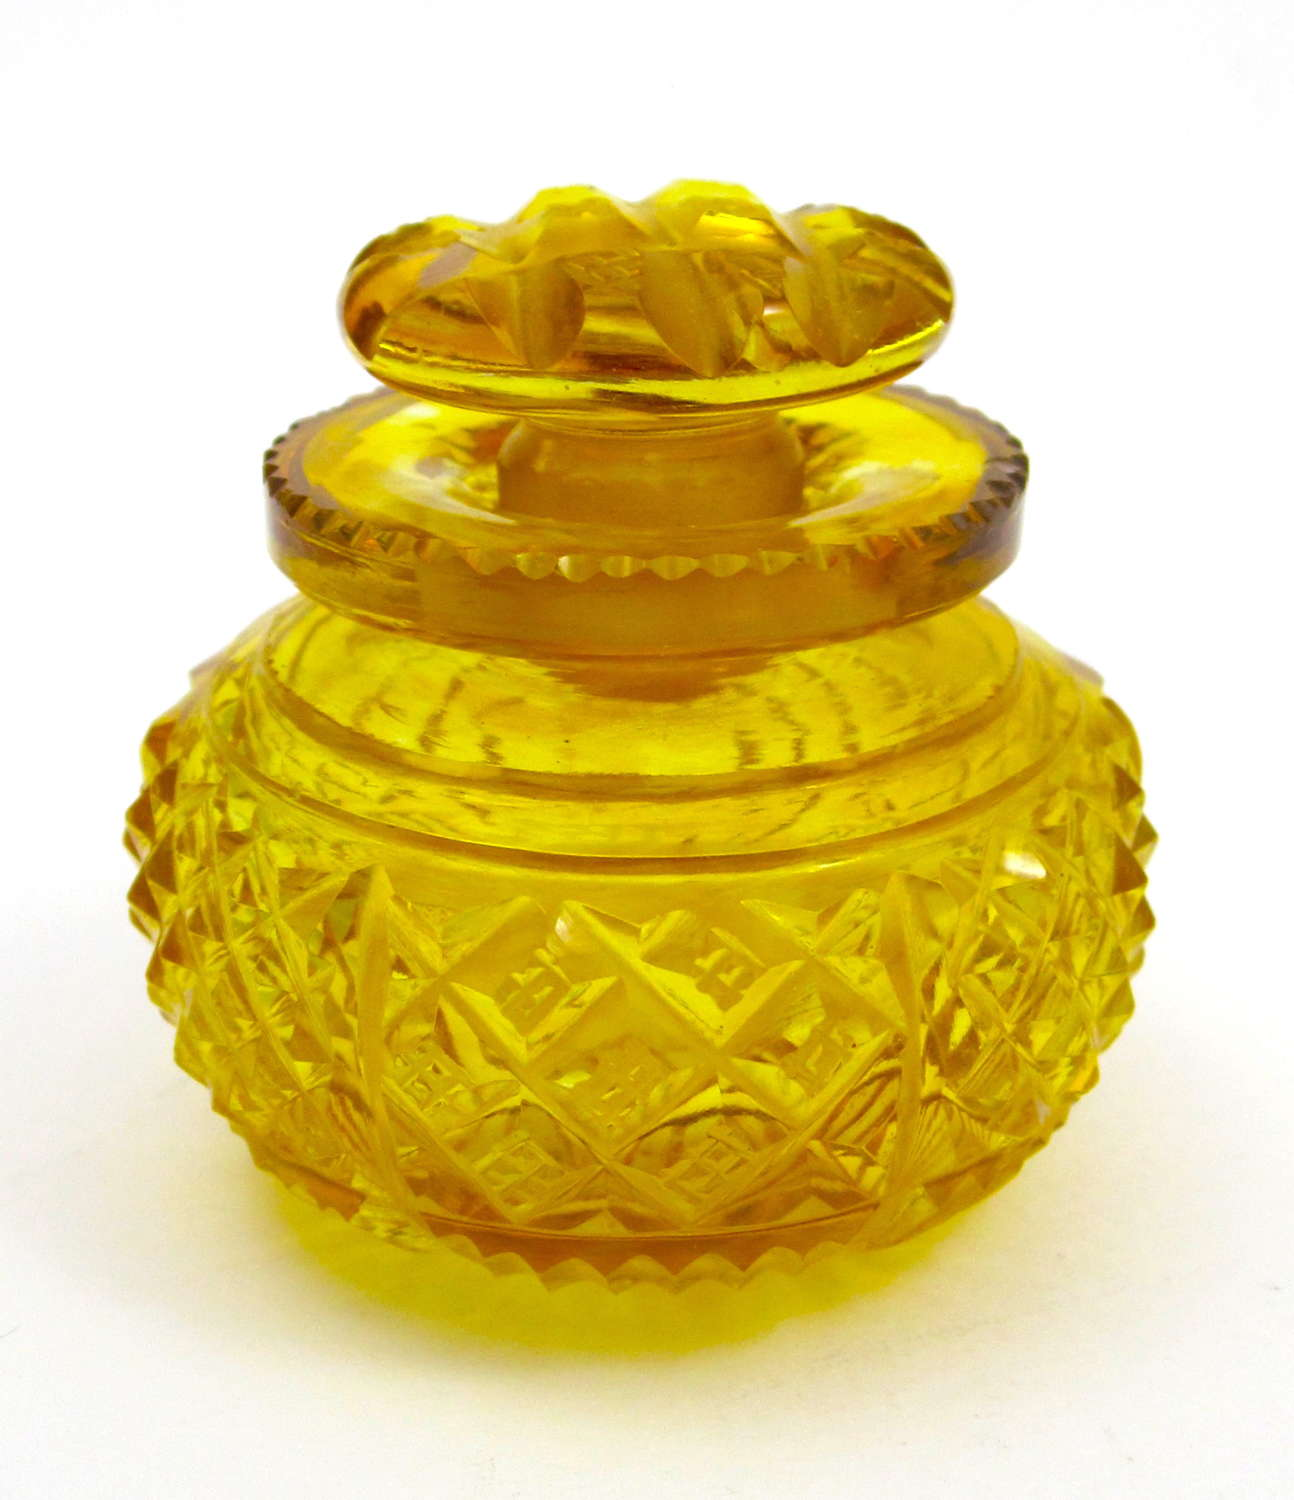 Miniature Antique Amber Cut Crystal Perfume Bottle